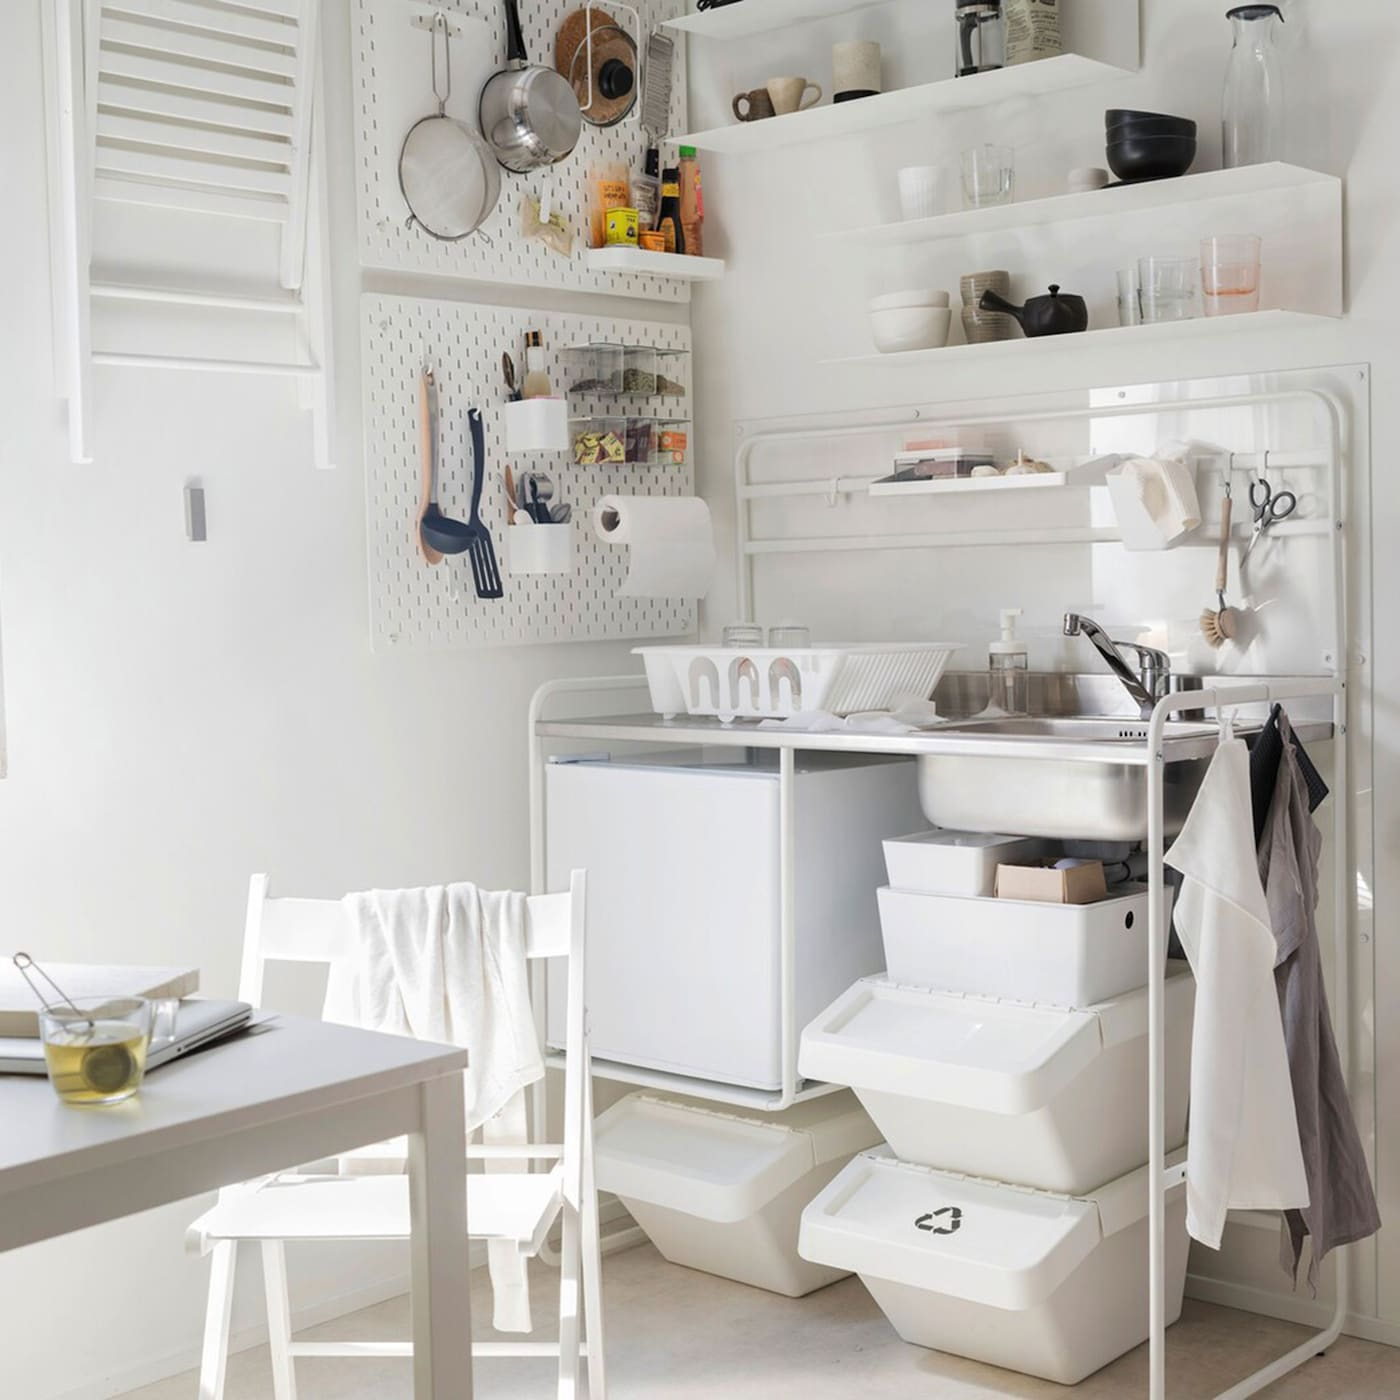 Kit out your kitchenette - IKEA